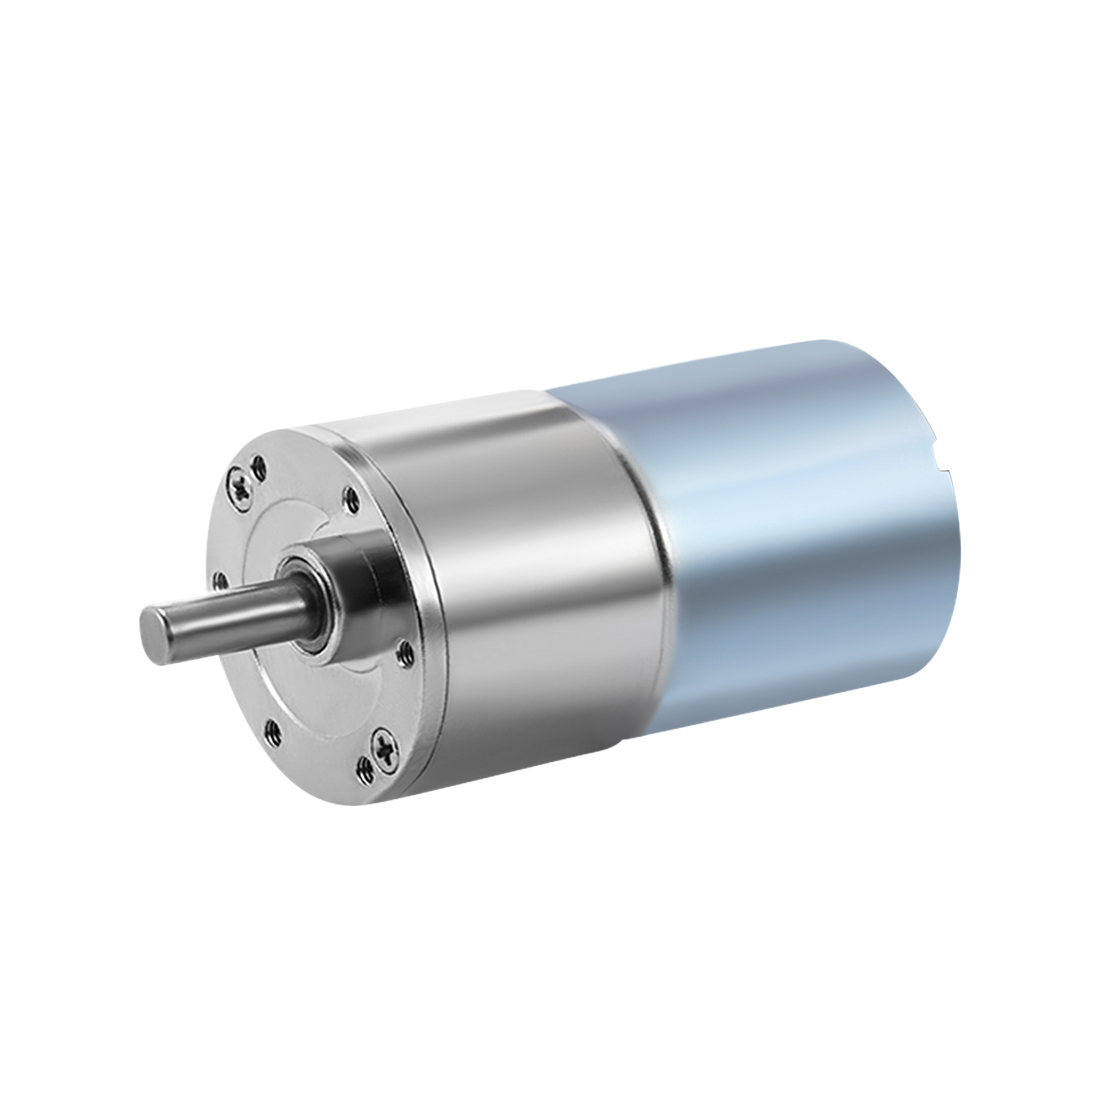 DC 12V 550RPM Micro Gear Box Motor Speed Reduction Electric Gearbox Eccentric Output Shaft